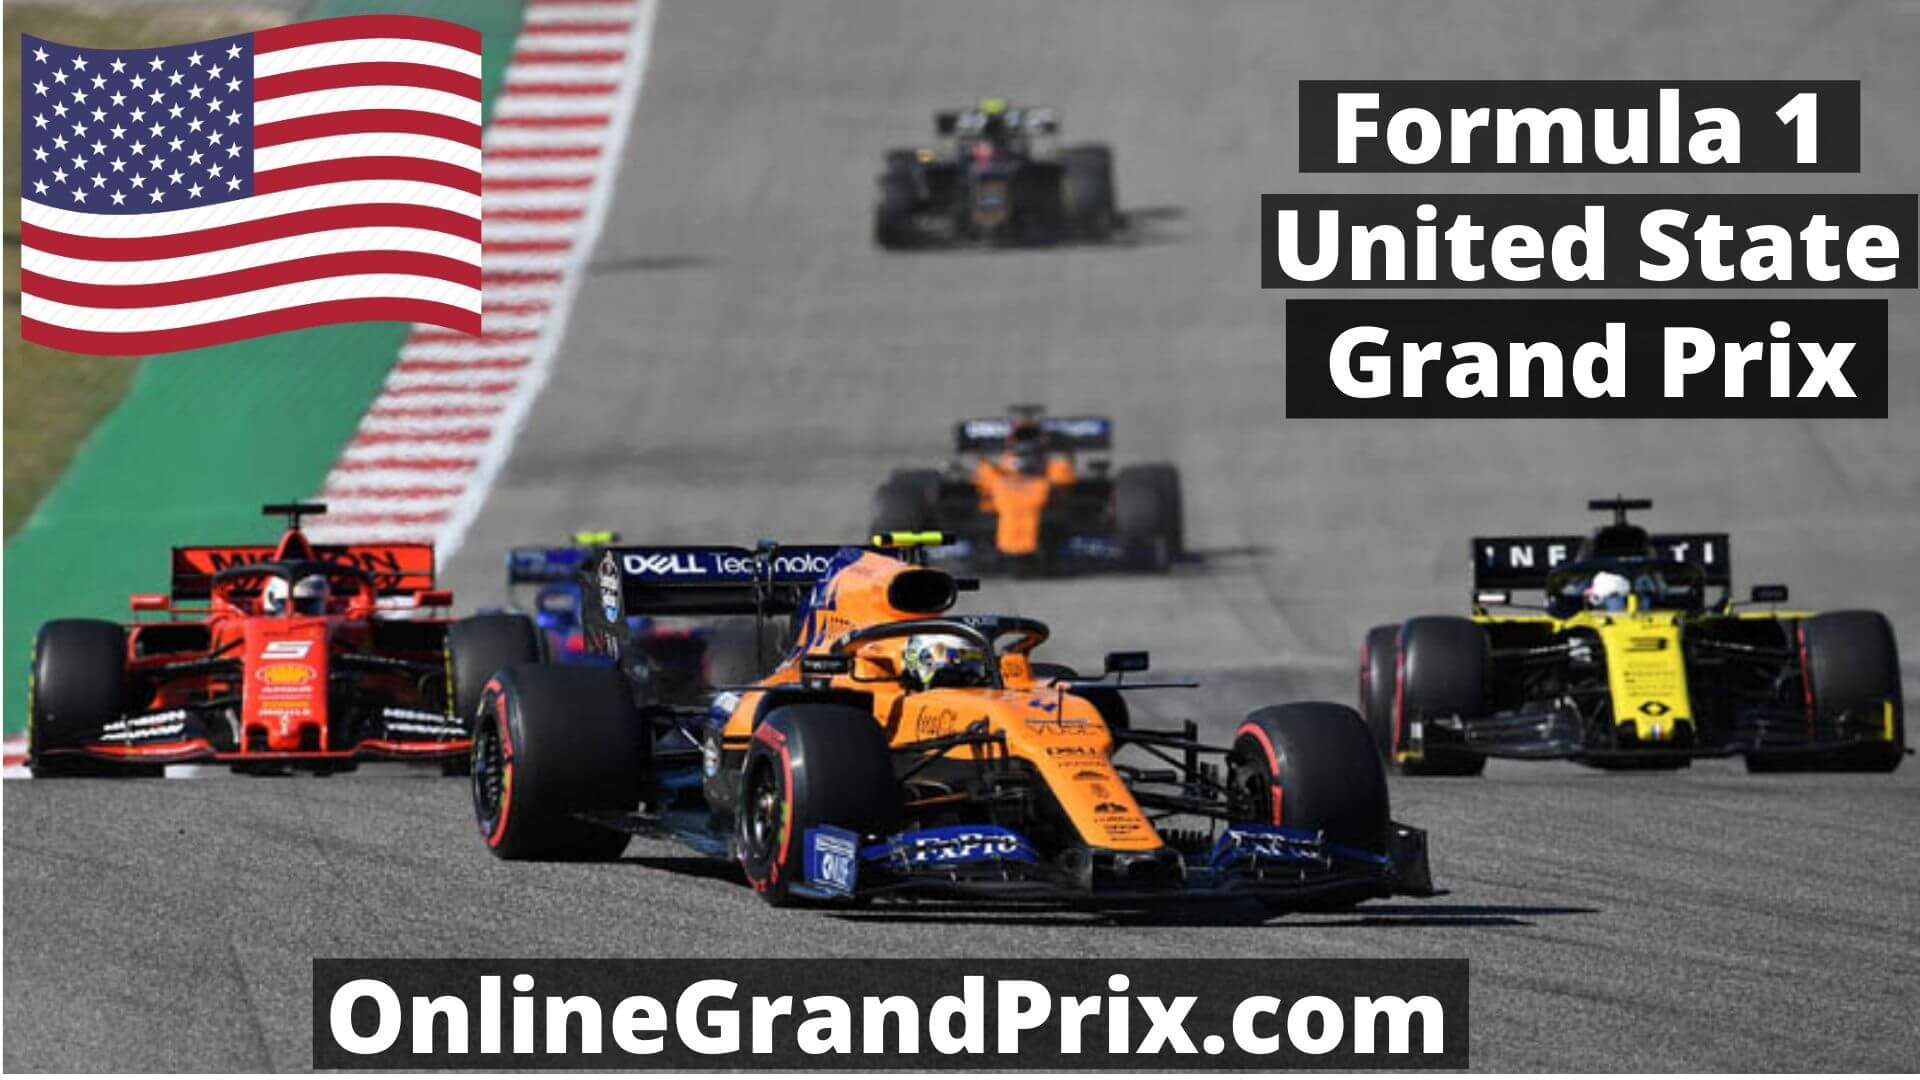 2015 United States Grand Prix Online